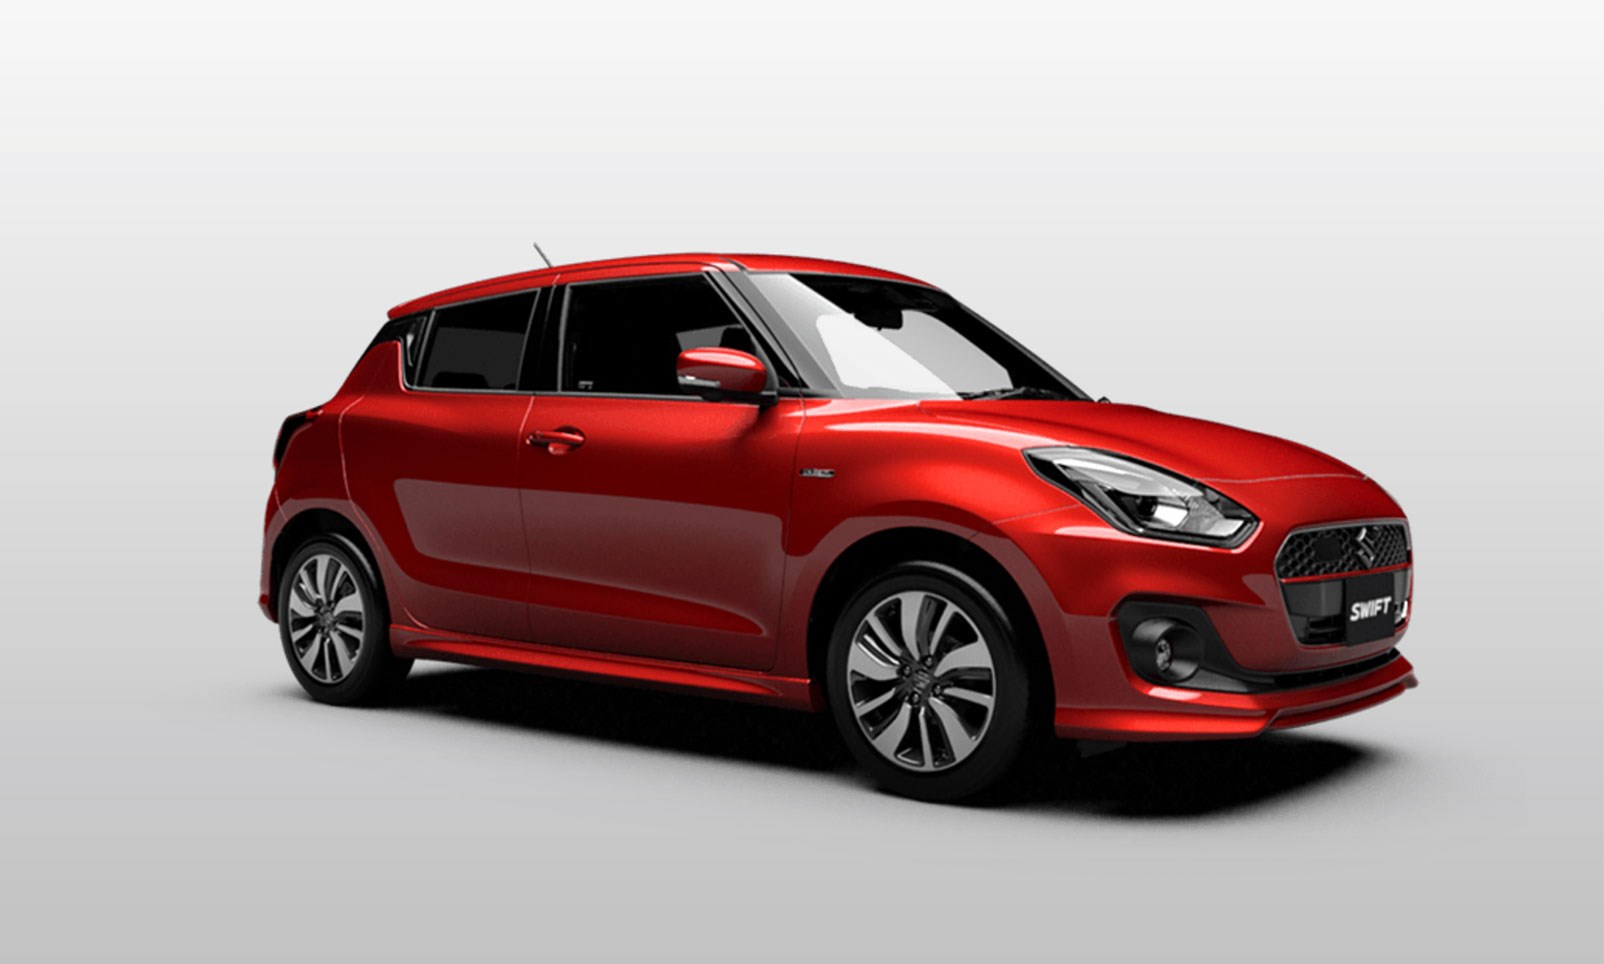 Suzuki swift photo - 9